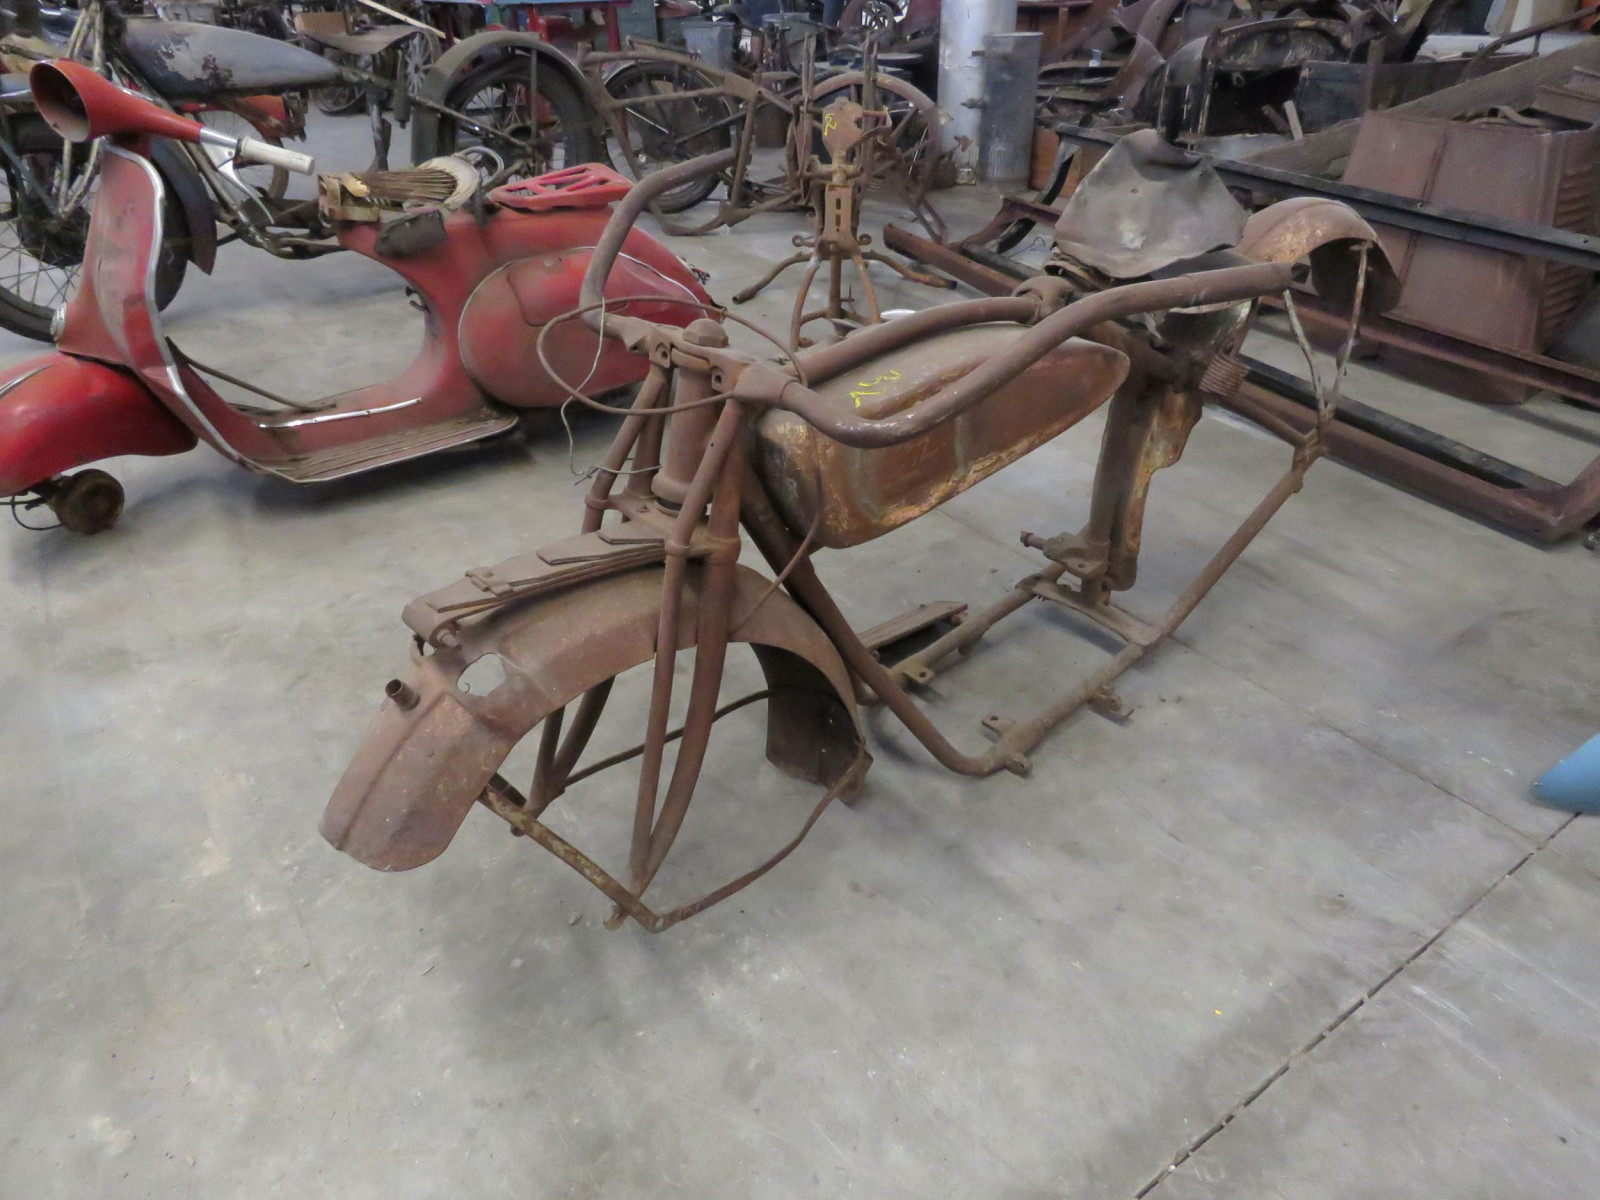 RARE 1920's Indian Motorcycle Project - Image 1